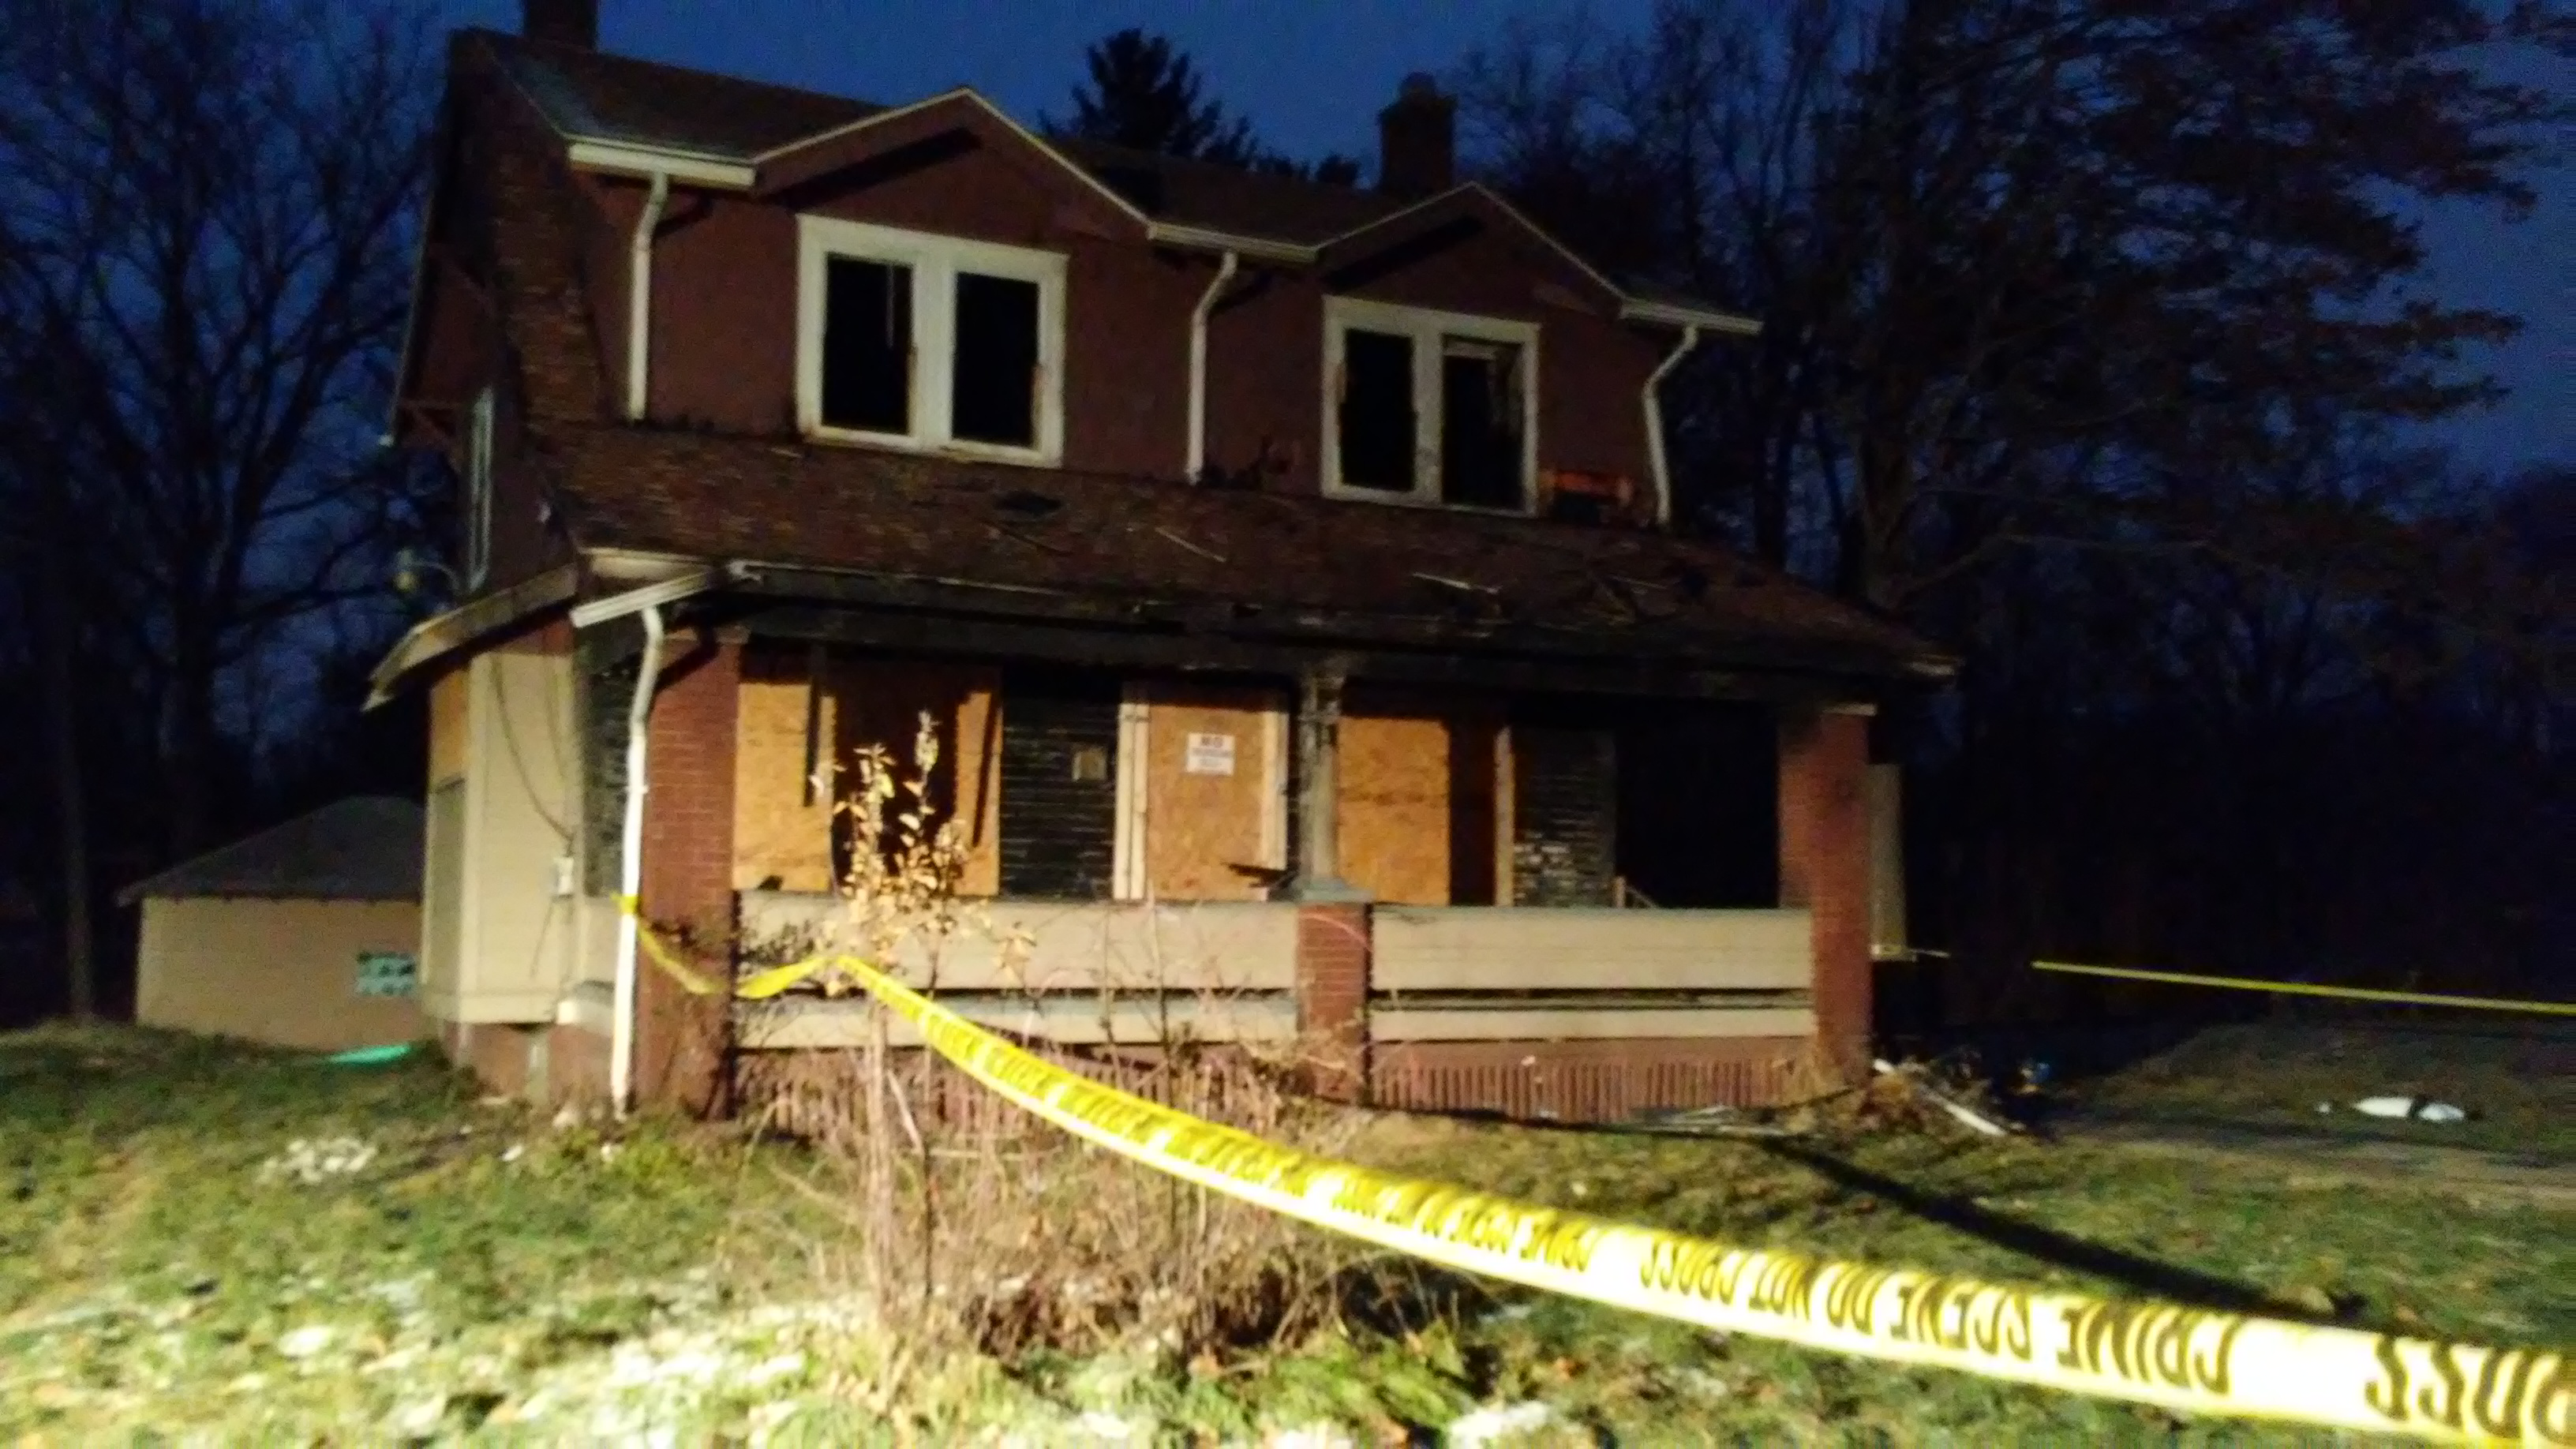 House fire kills 5 children, injures mother